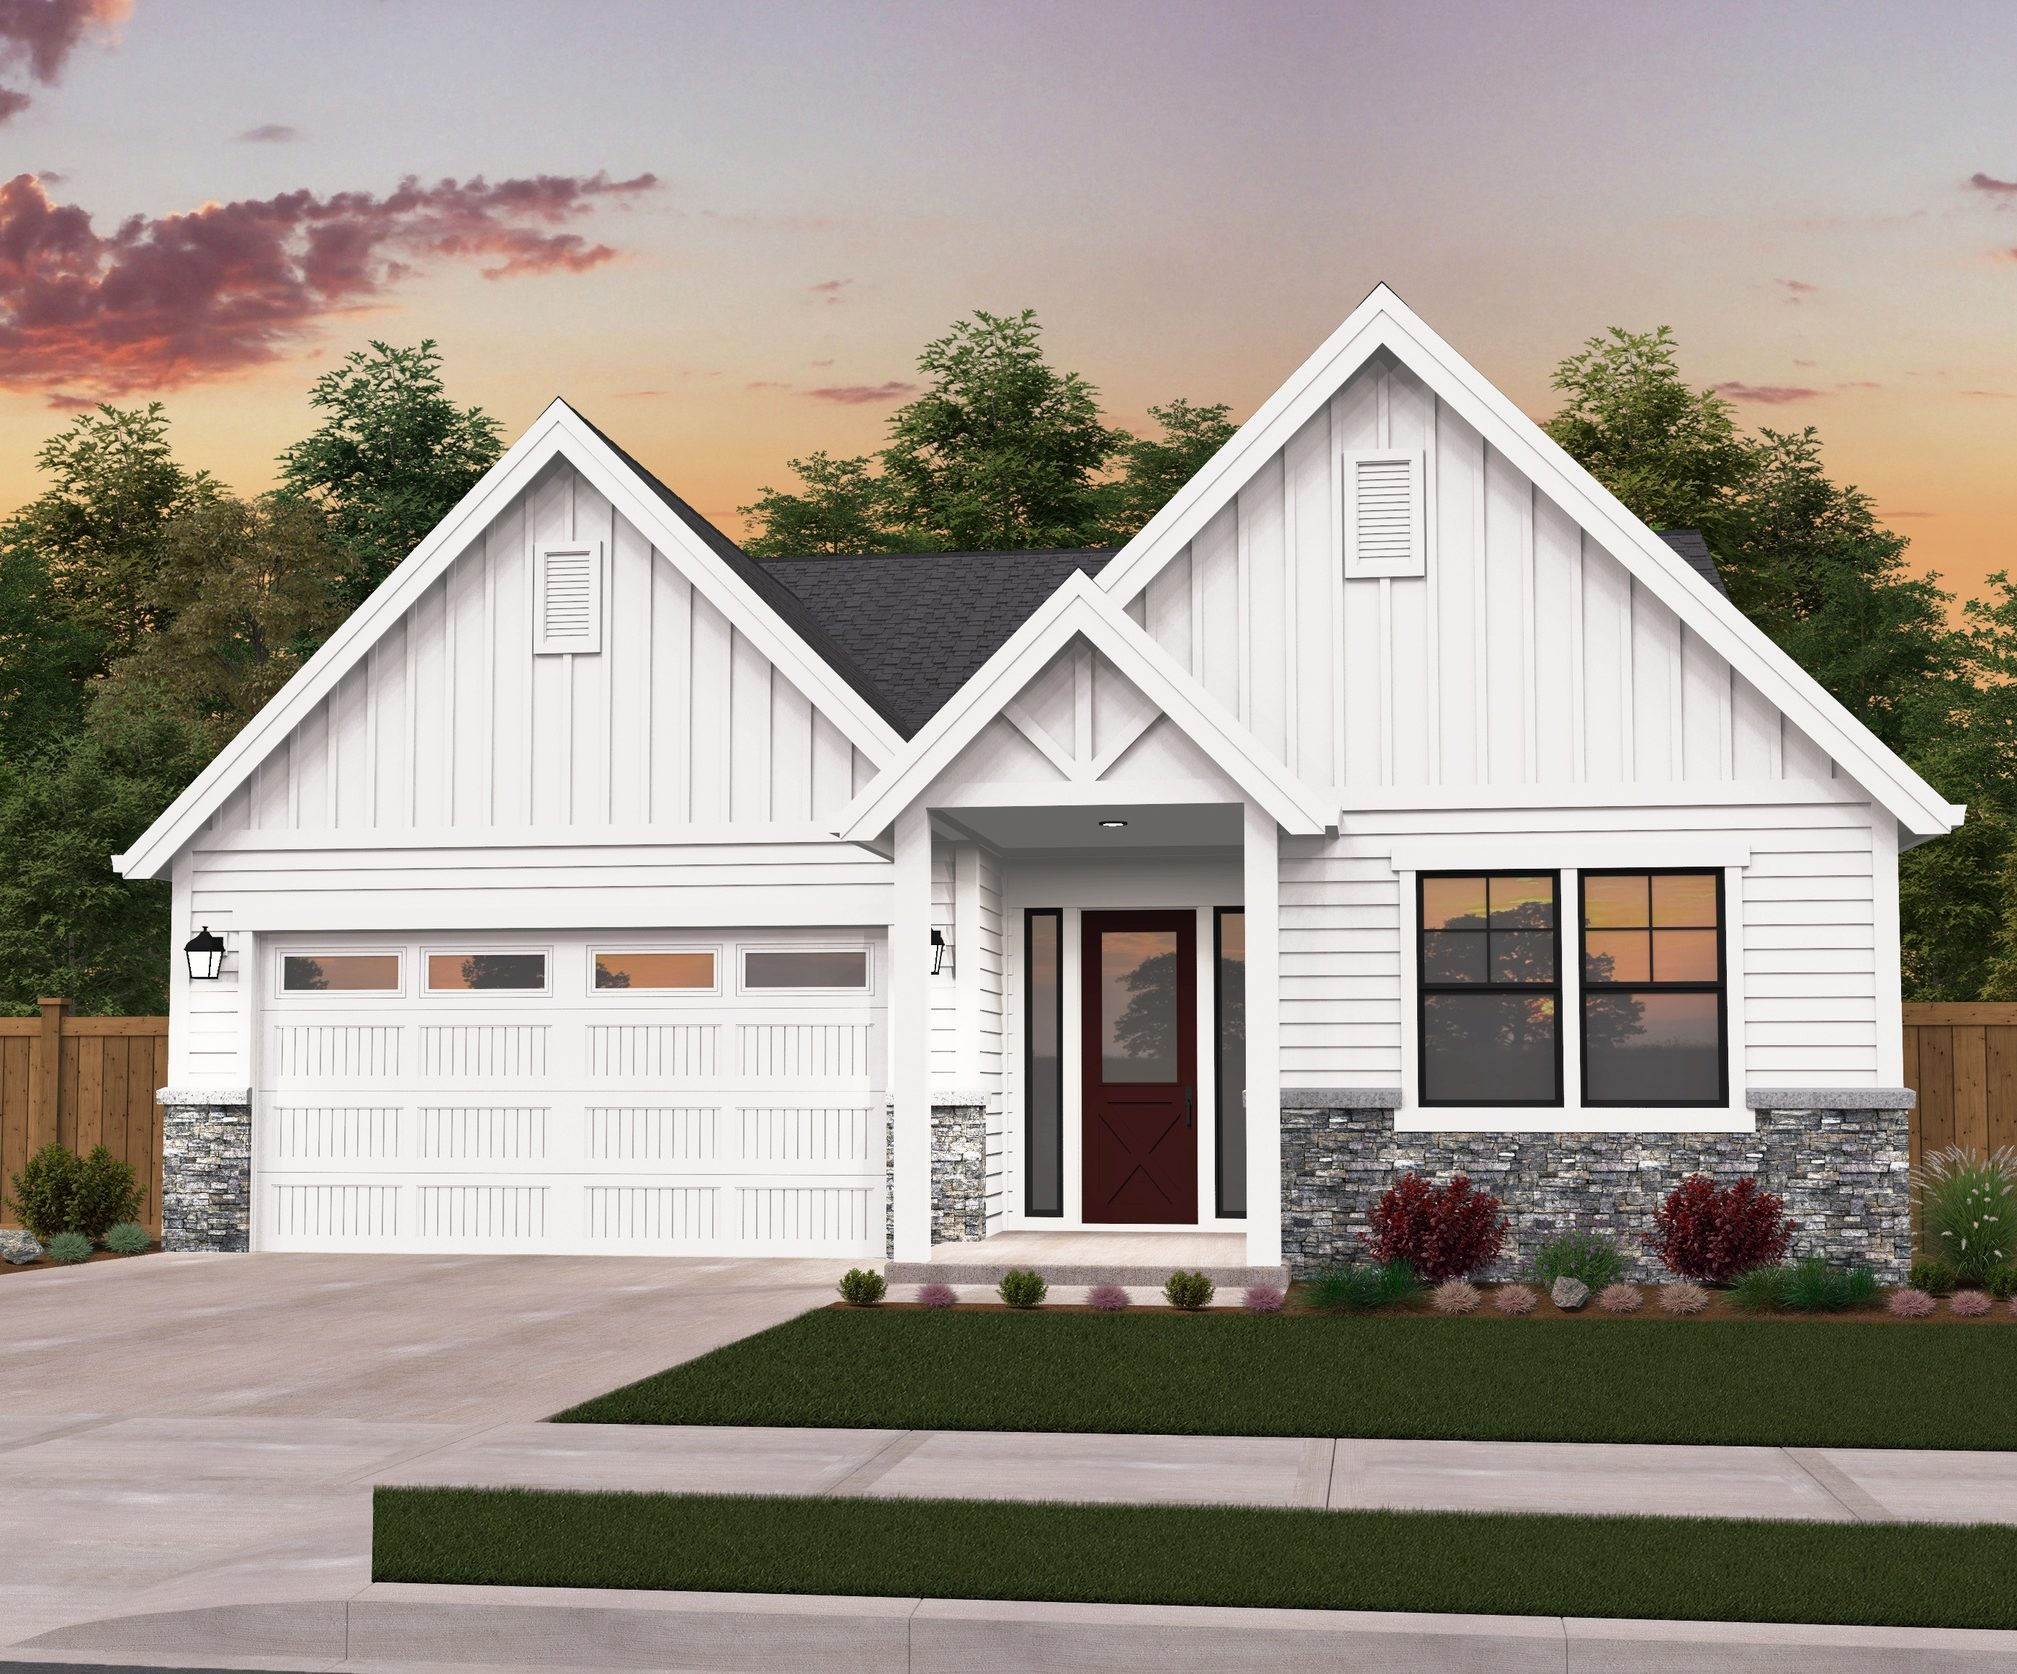 AD 2 Opt A 2.19.2018 final e1529082850186 - 44+ Small Modern House Plans Single Story Images